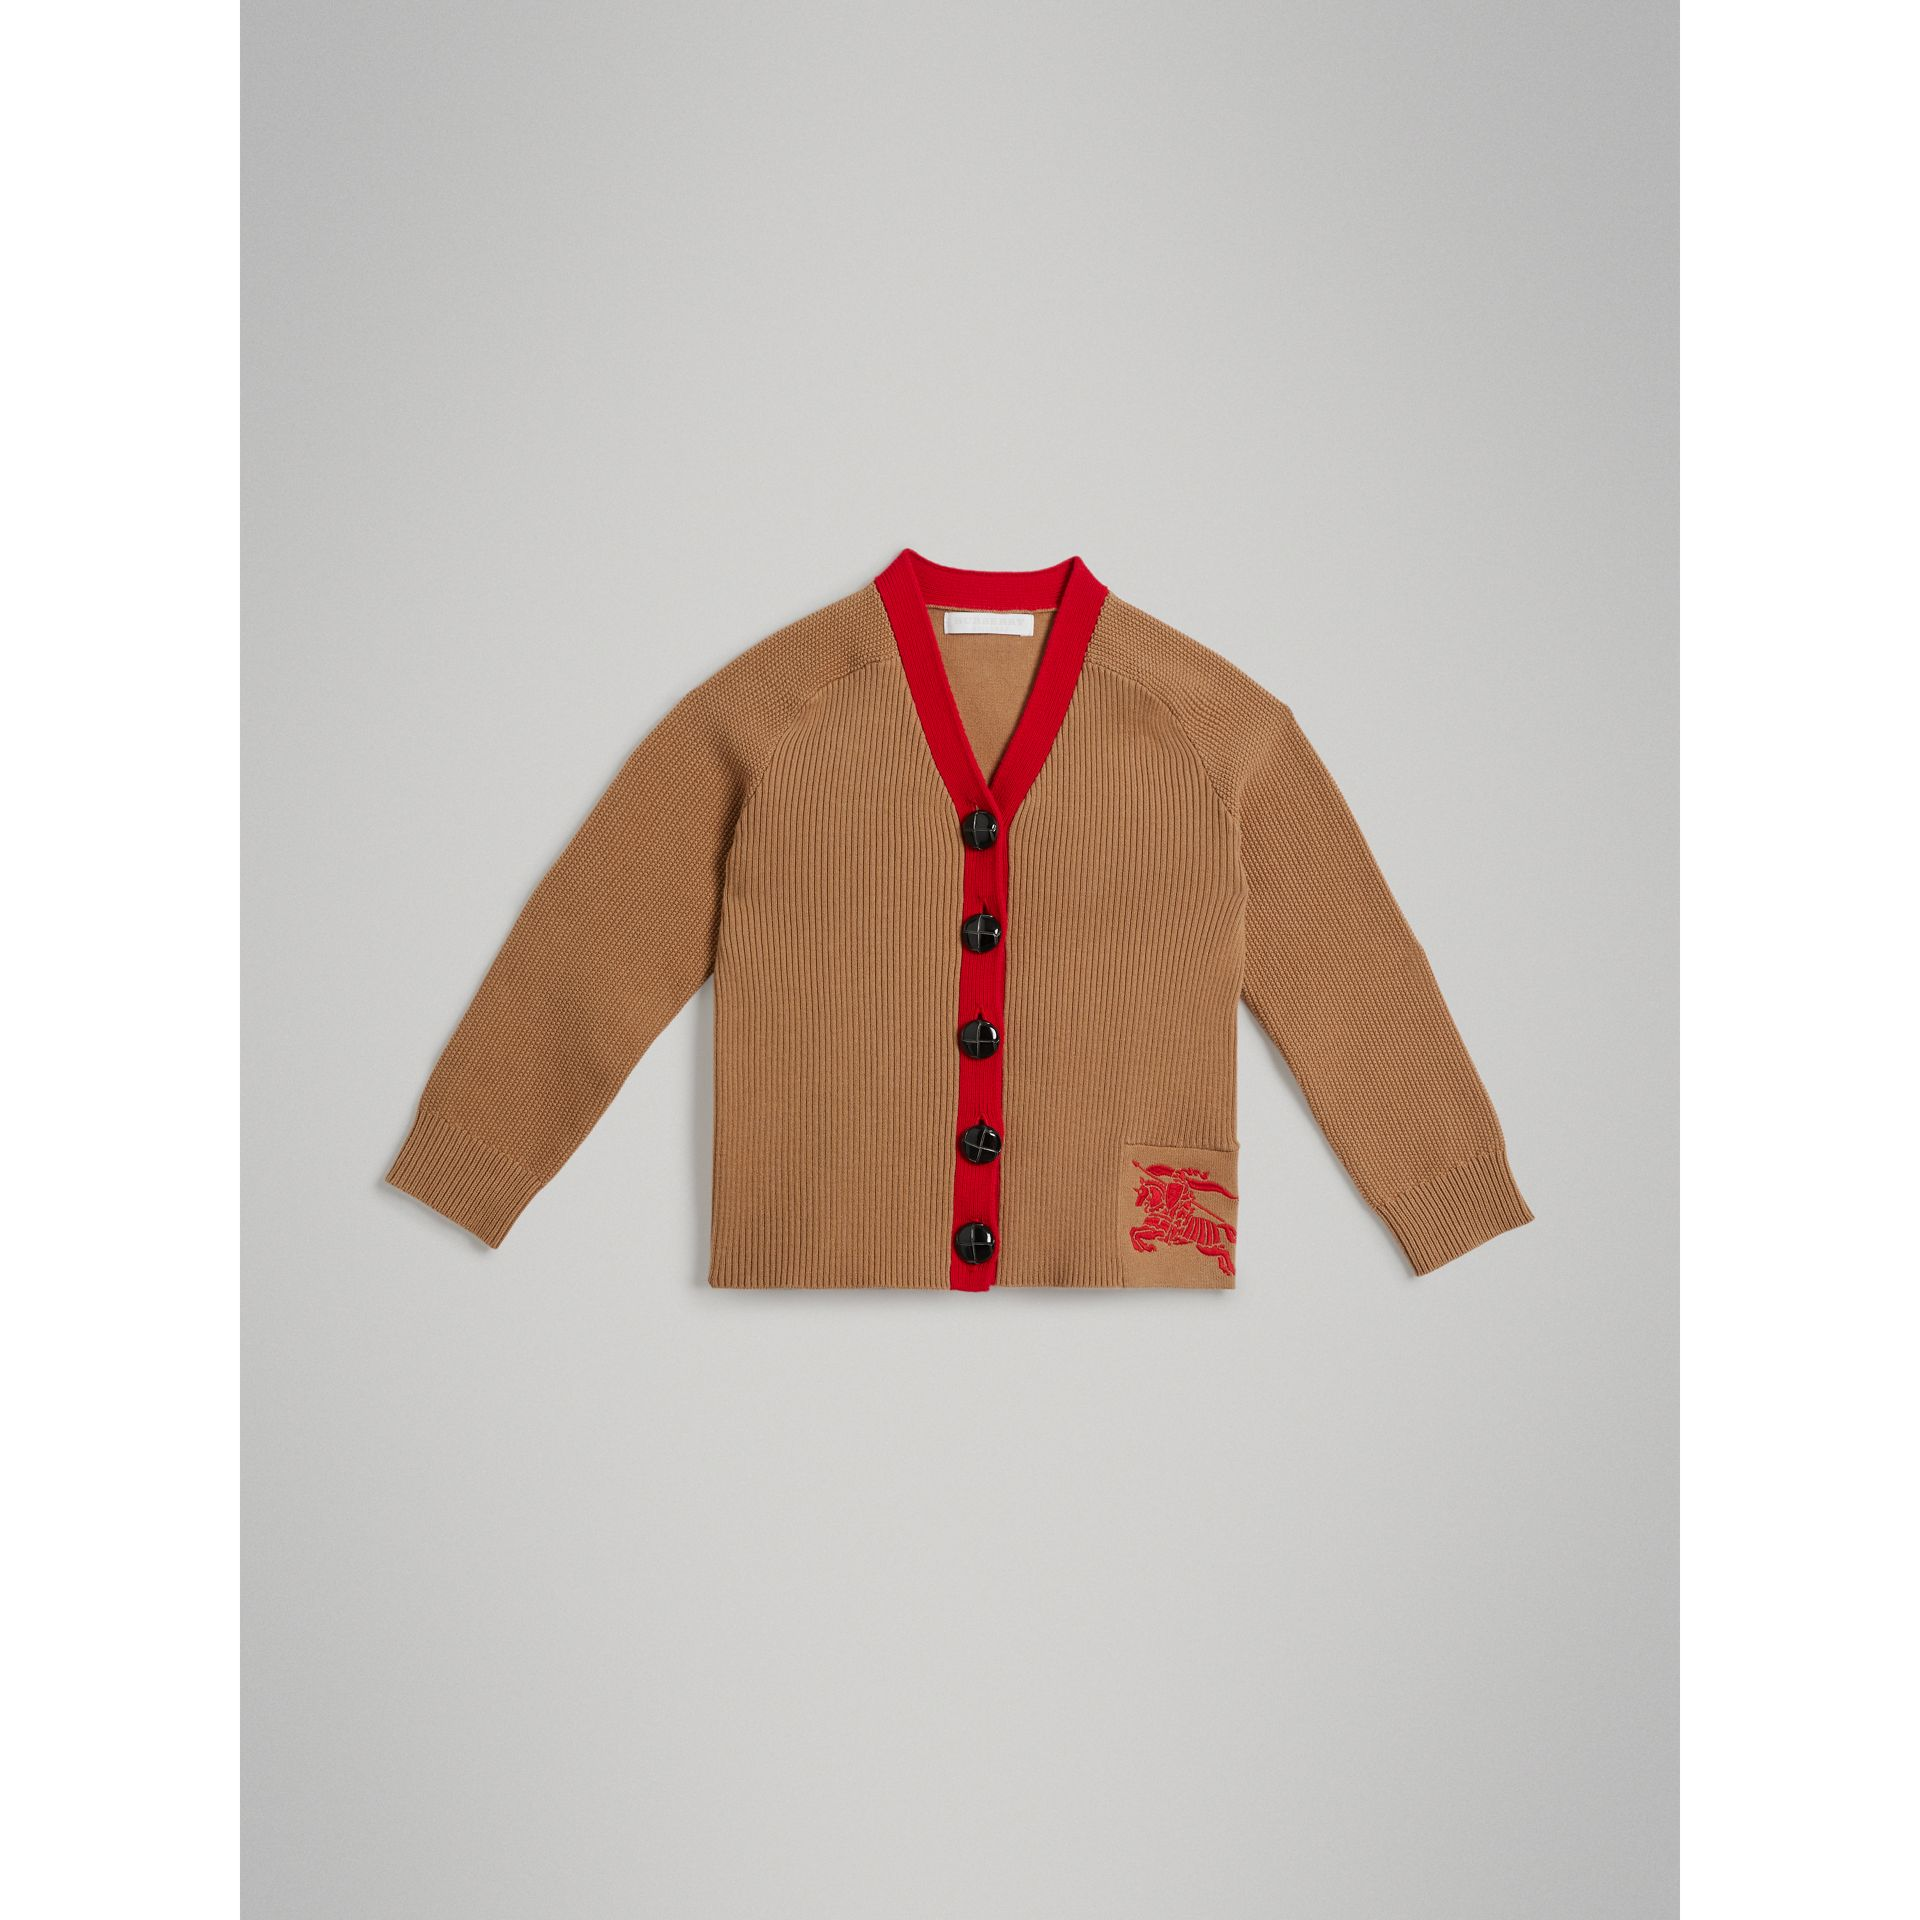 Cardigan en coton bicolore (Camel) | Burberry - photo de la galerie 0